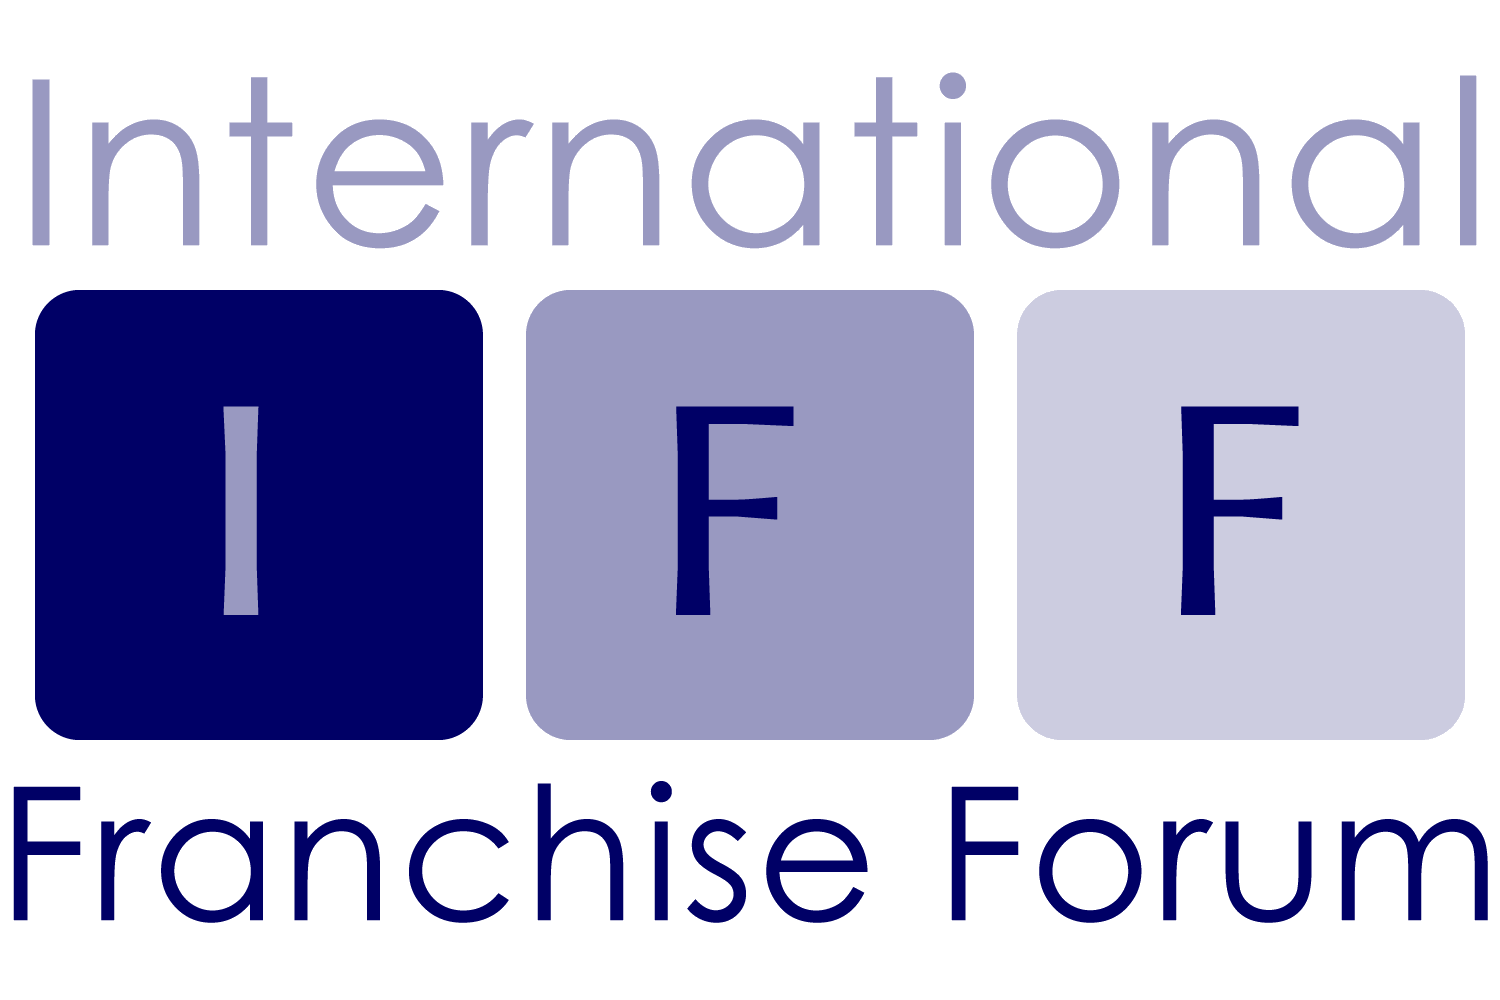 International Franchise Forum, London